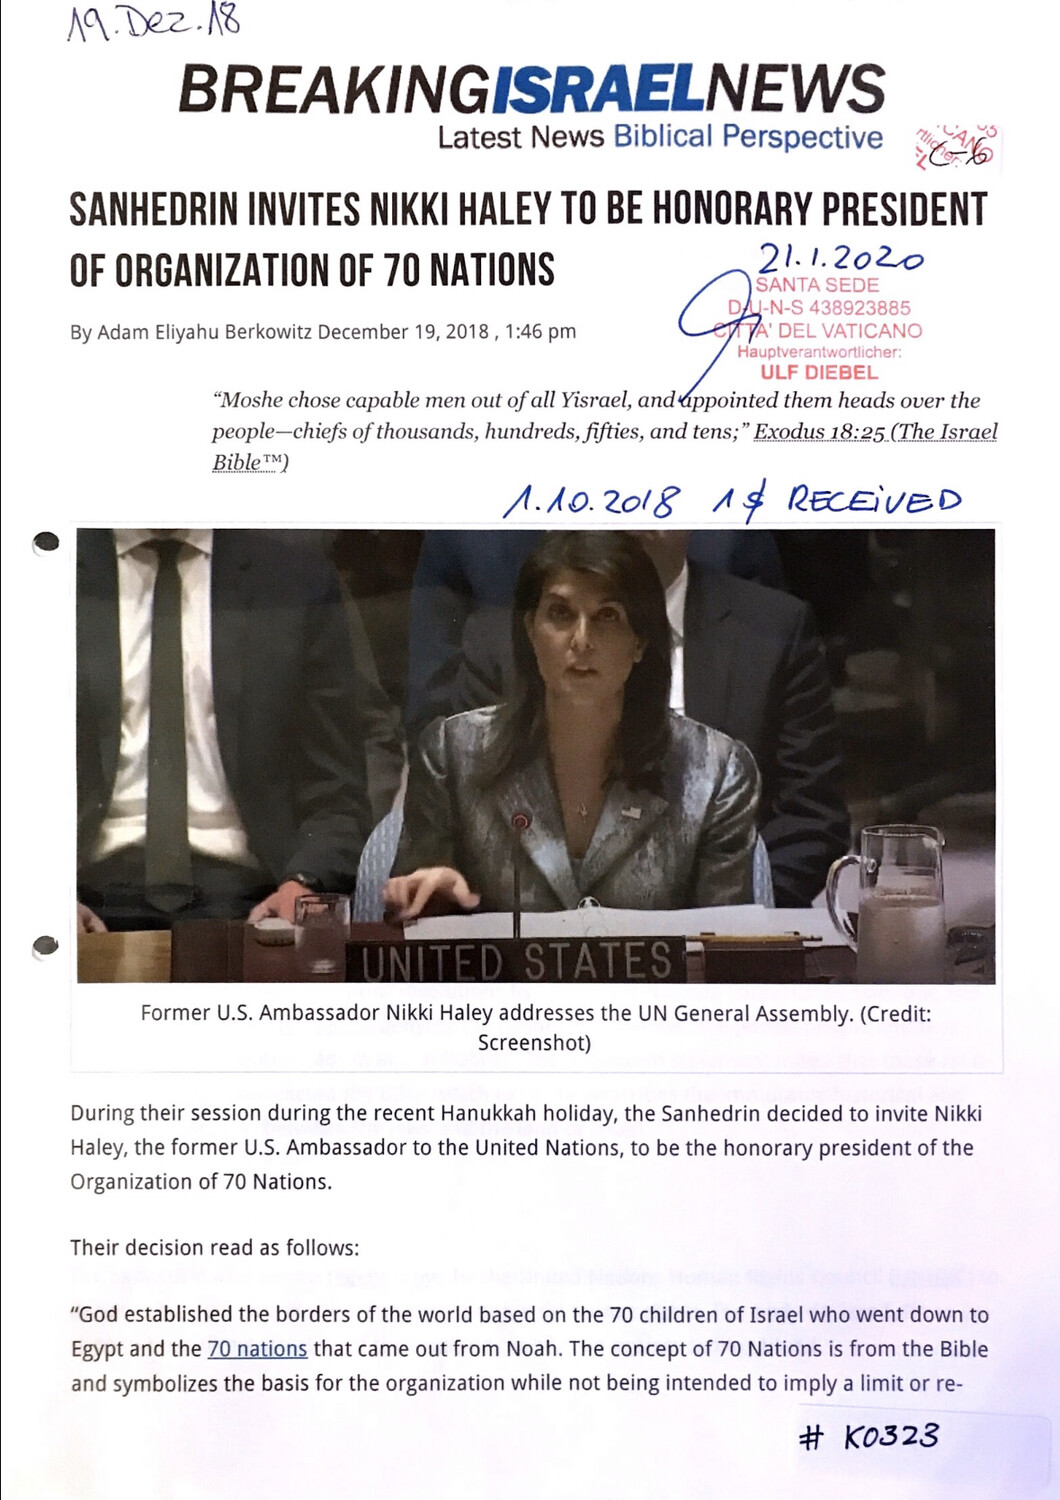 #K0323 l Breaking Israel News - Sanhedrin invites Nikki Haley to be honorary President of organization of 70 nations